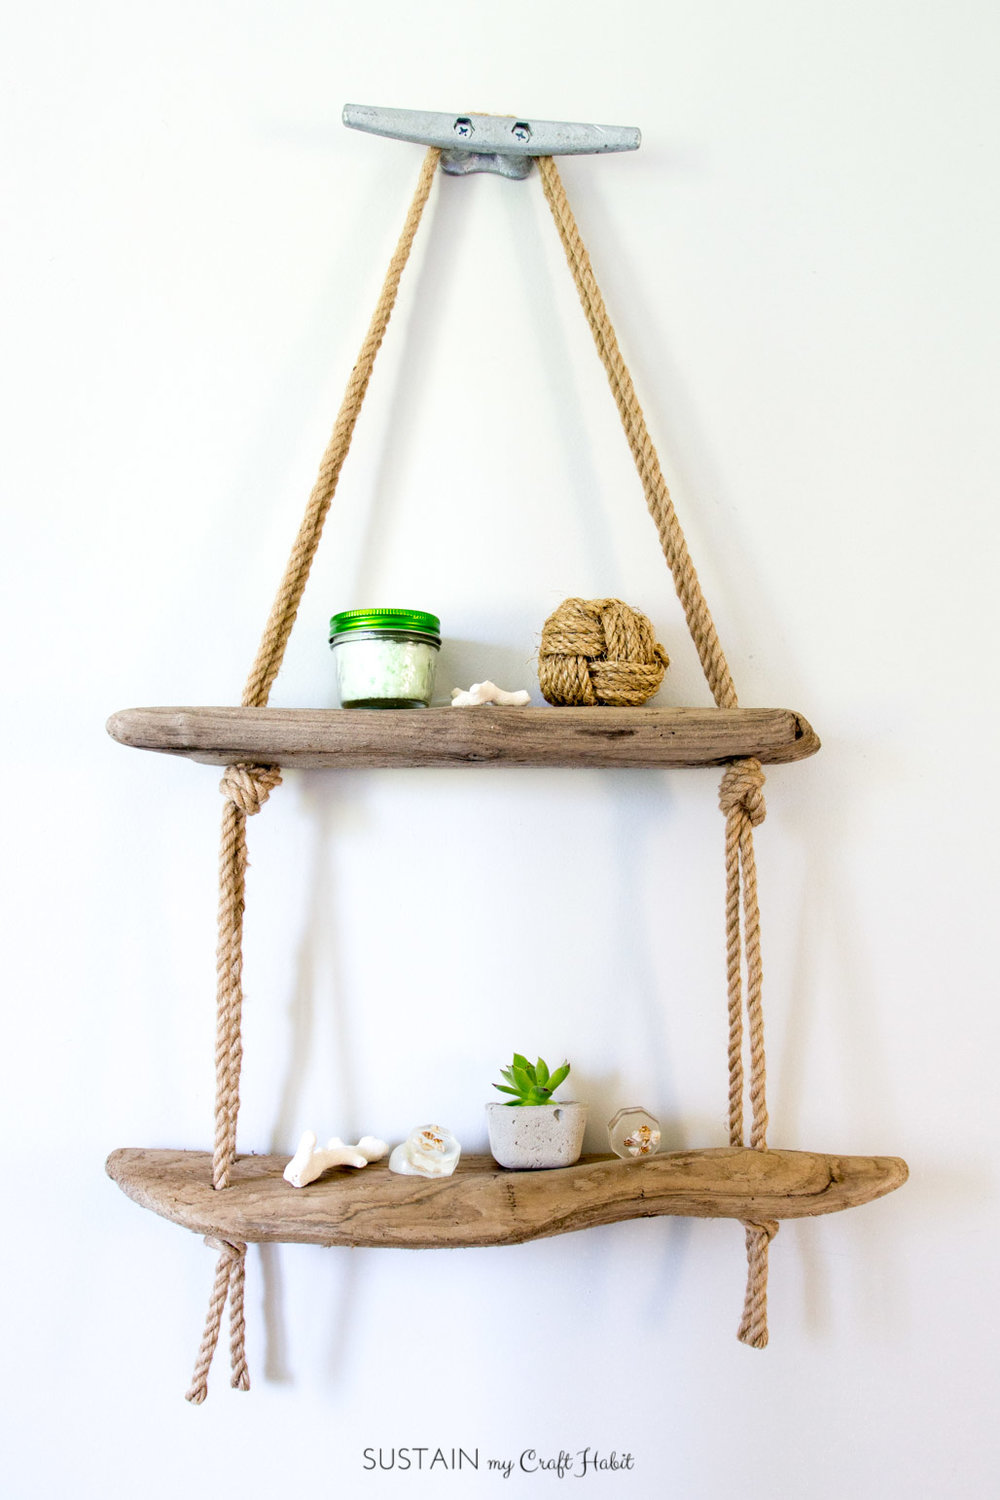 DIY hanging rope shelf! This rustic, nautical decor idea is perfect for the cottage, lake house or any coastal home. Full tutorial included!